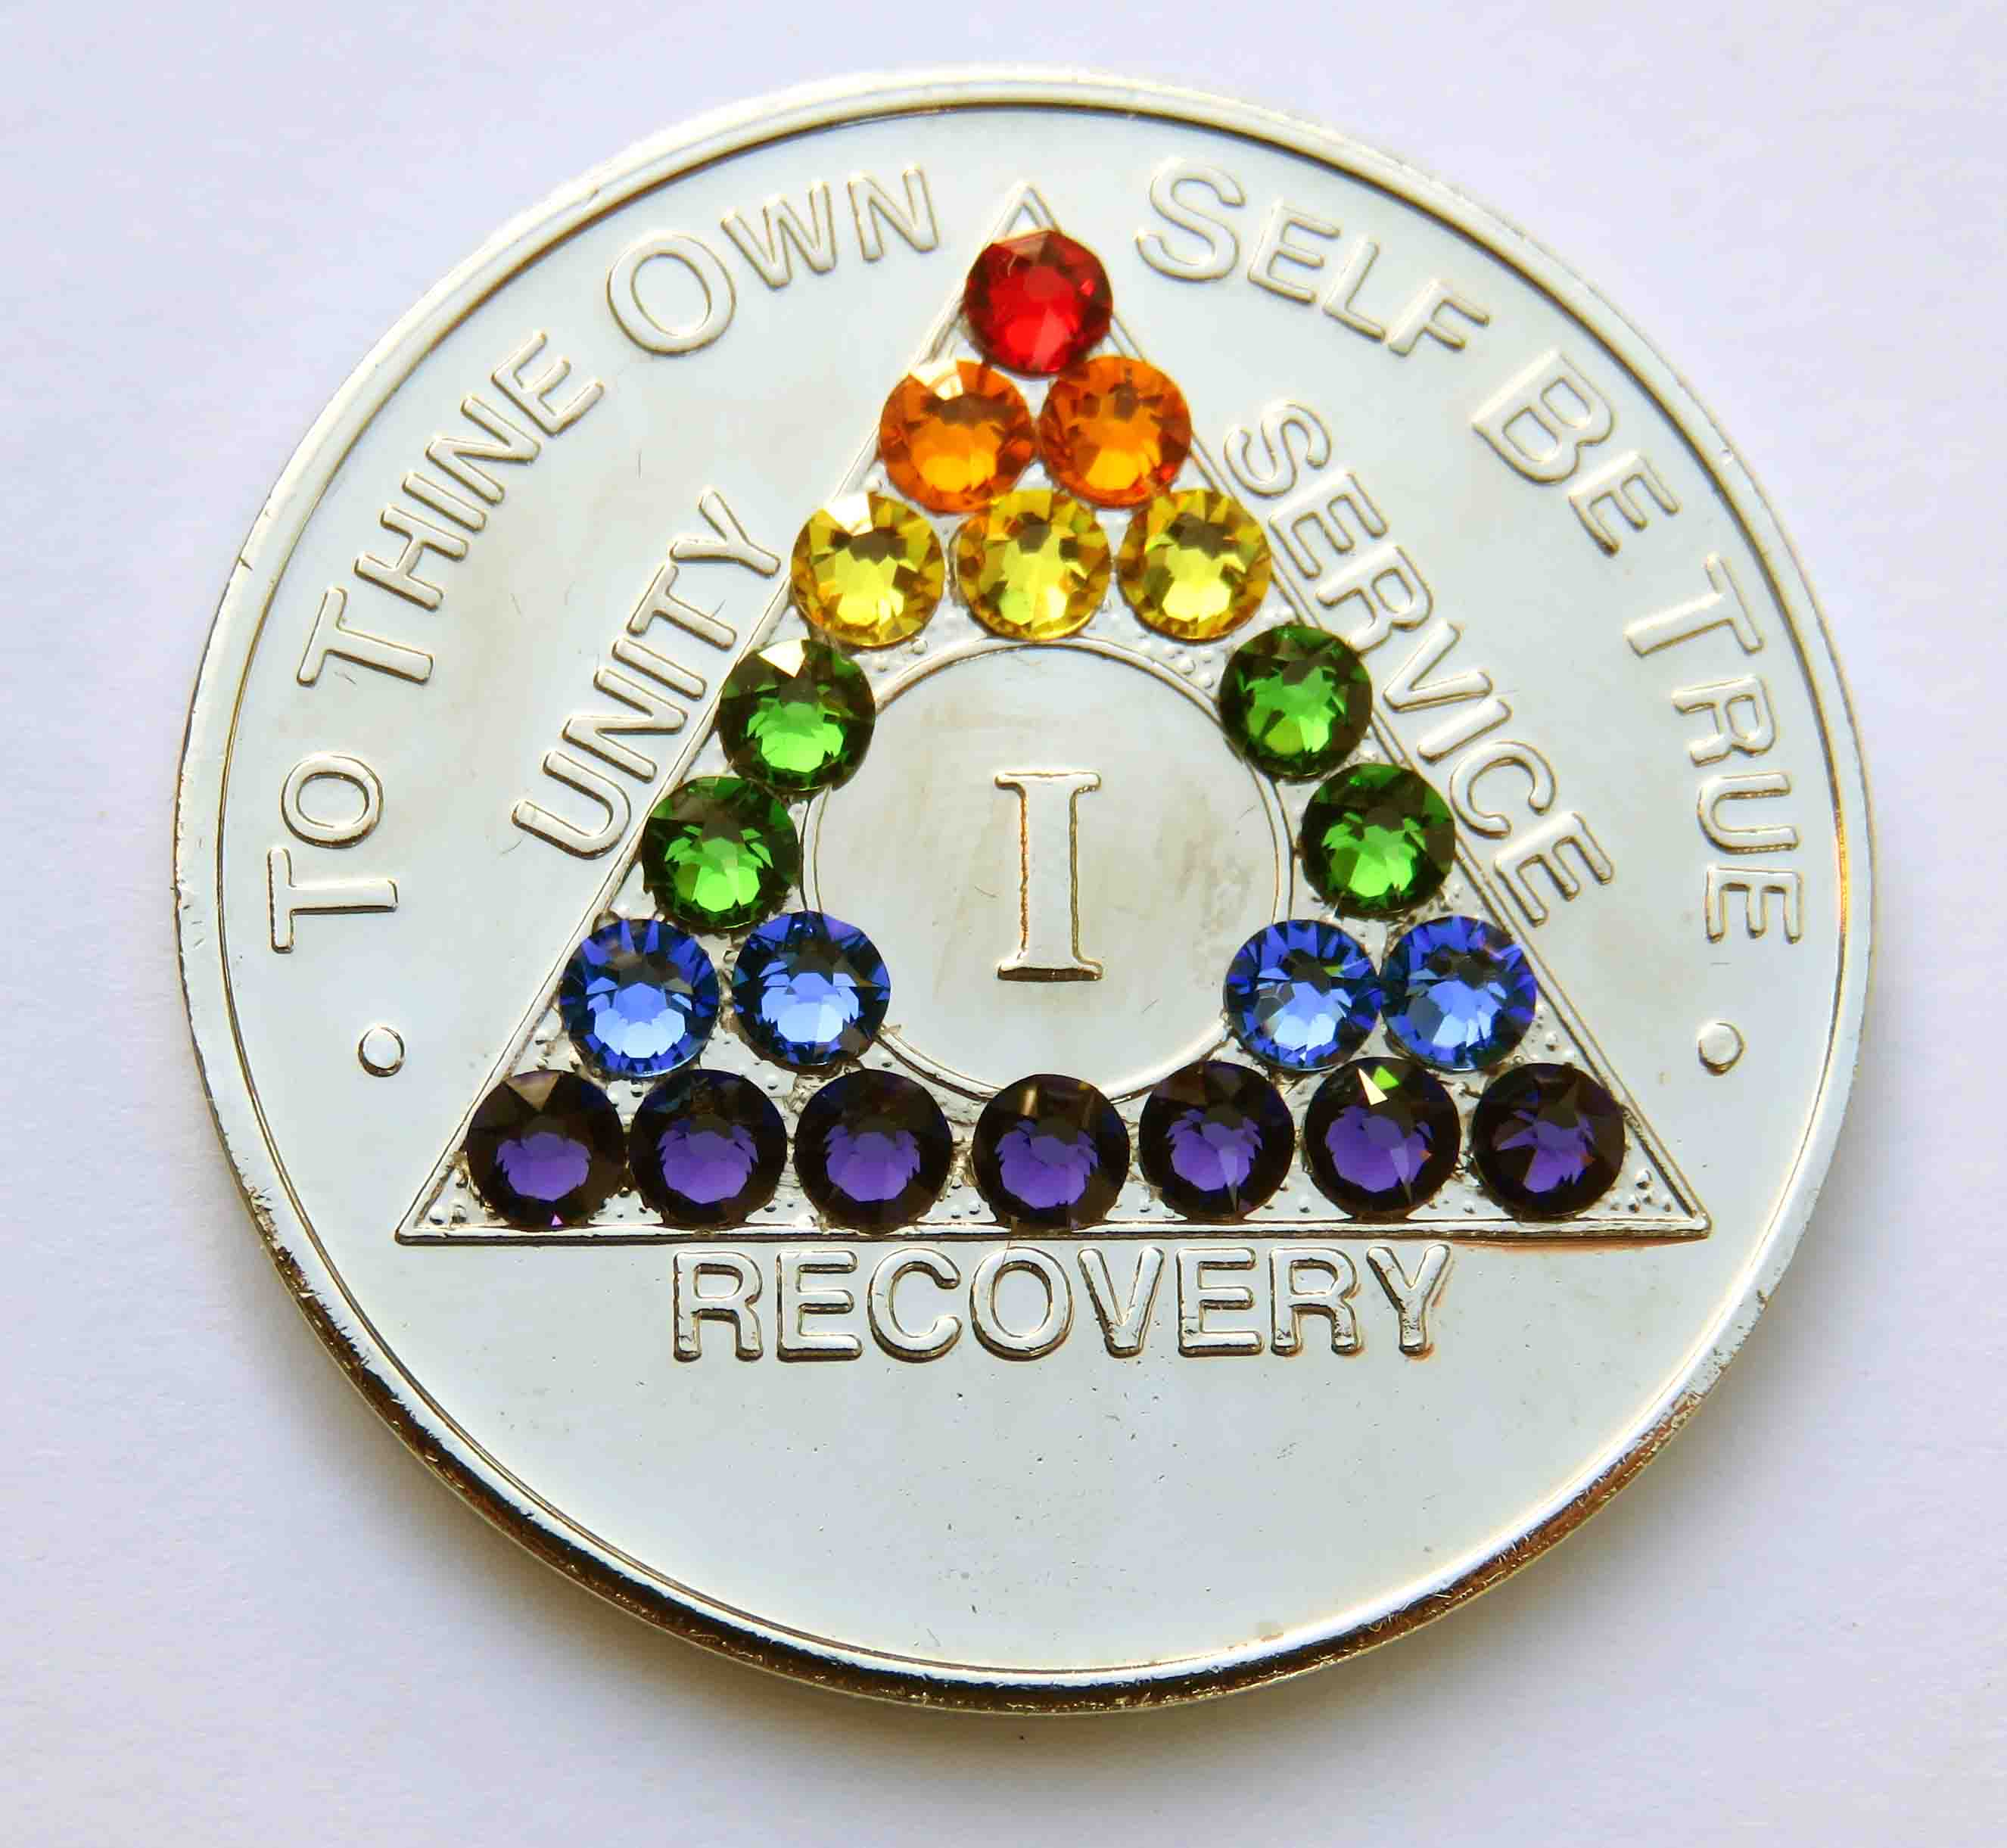 jewelry sponsee sponsor him pin for recovery pendant her or congratulations gift milestone